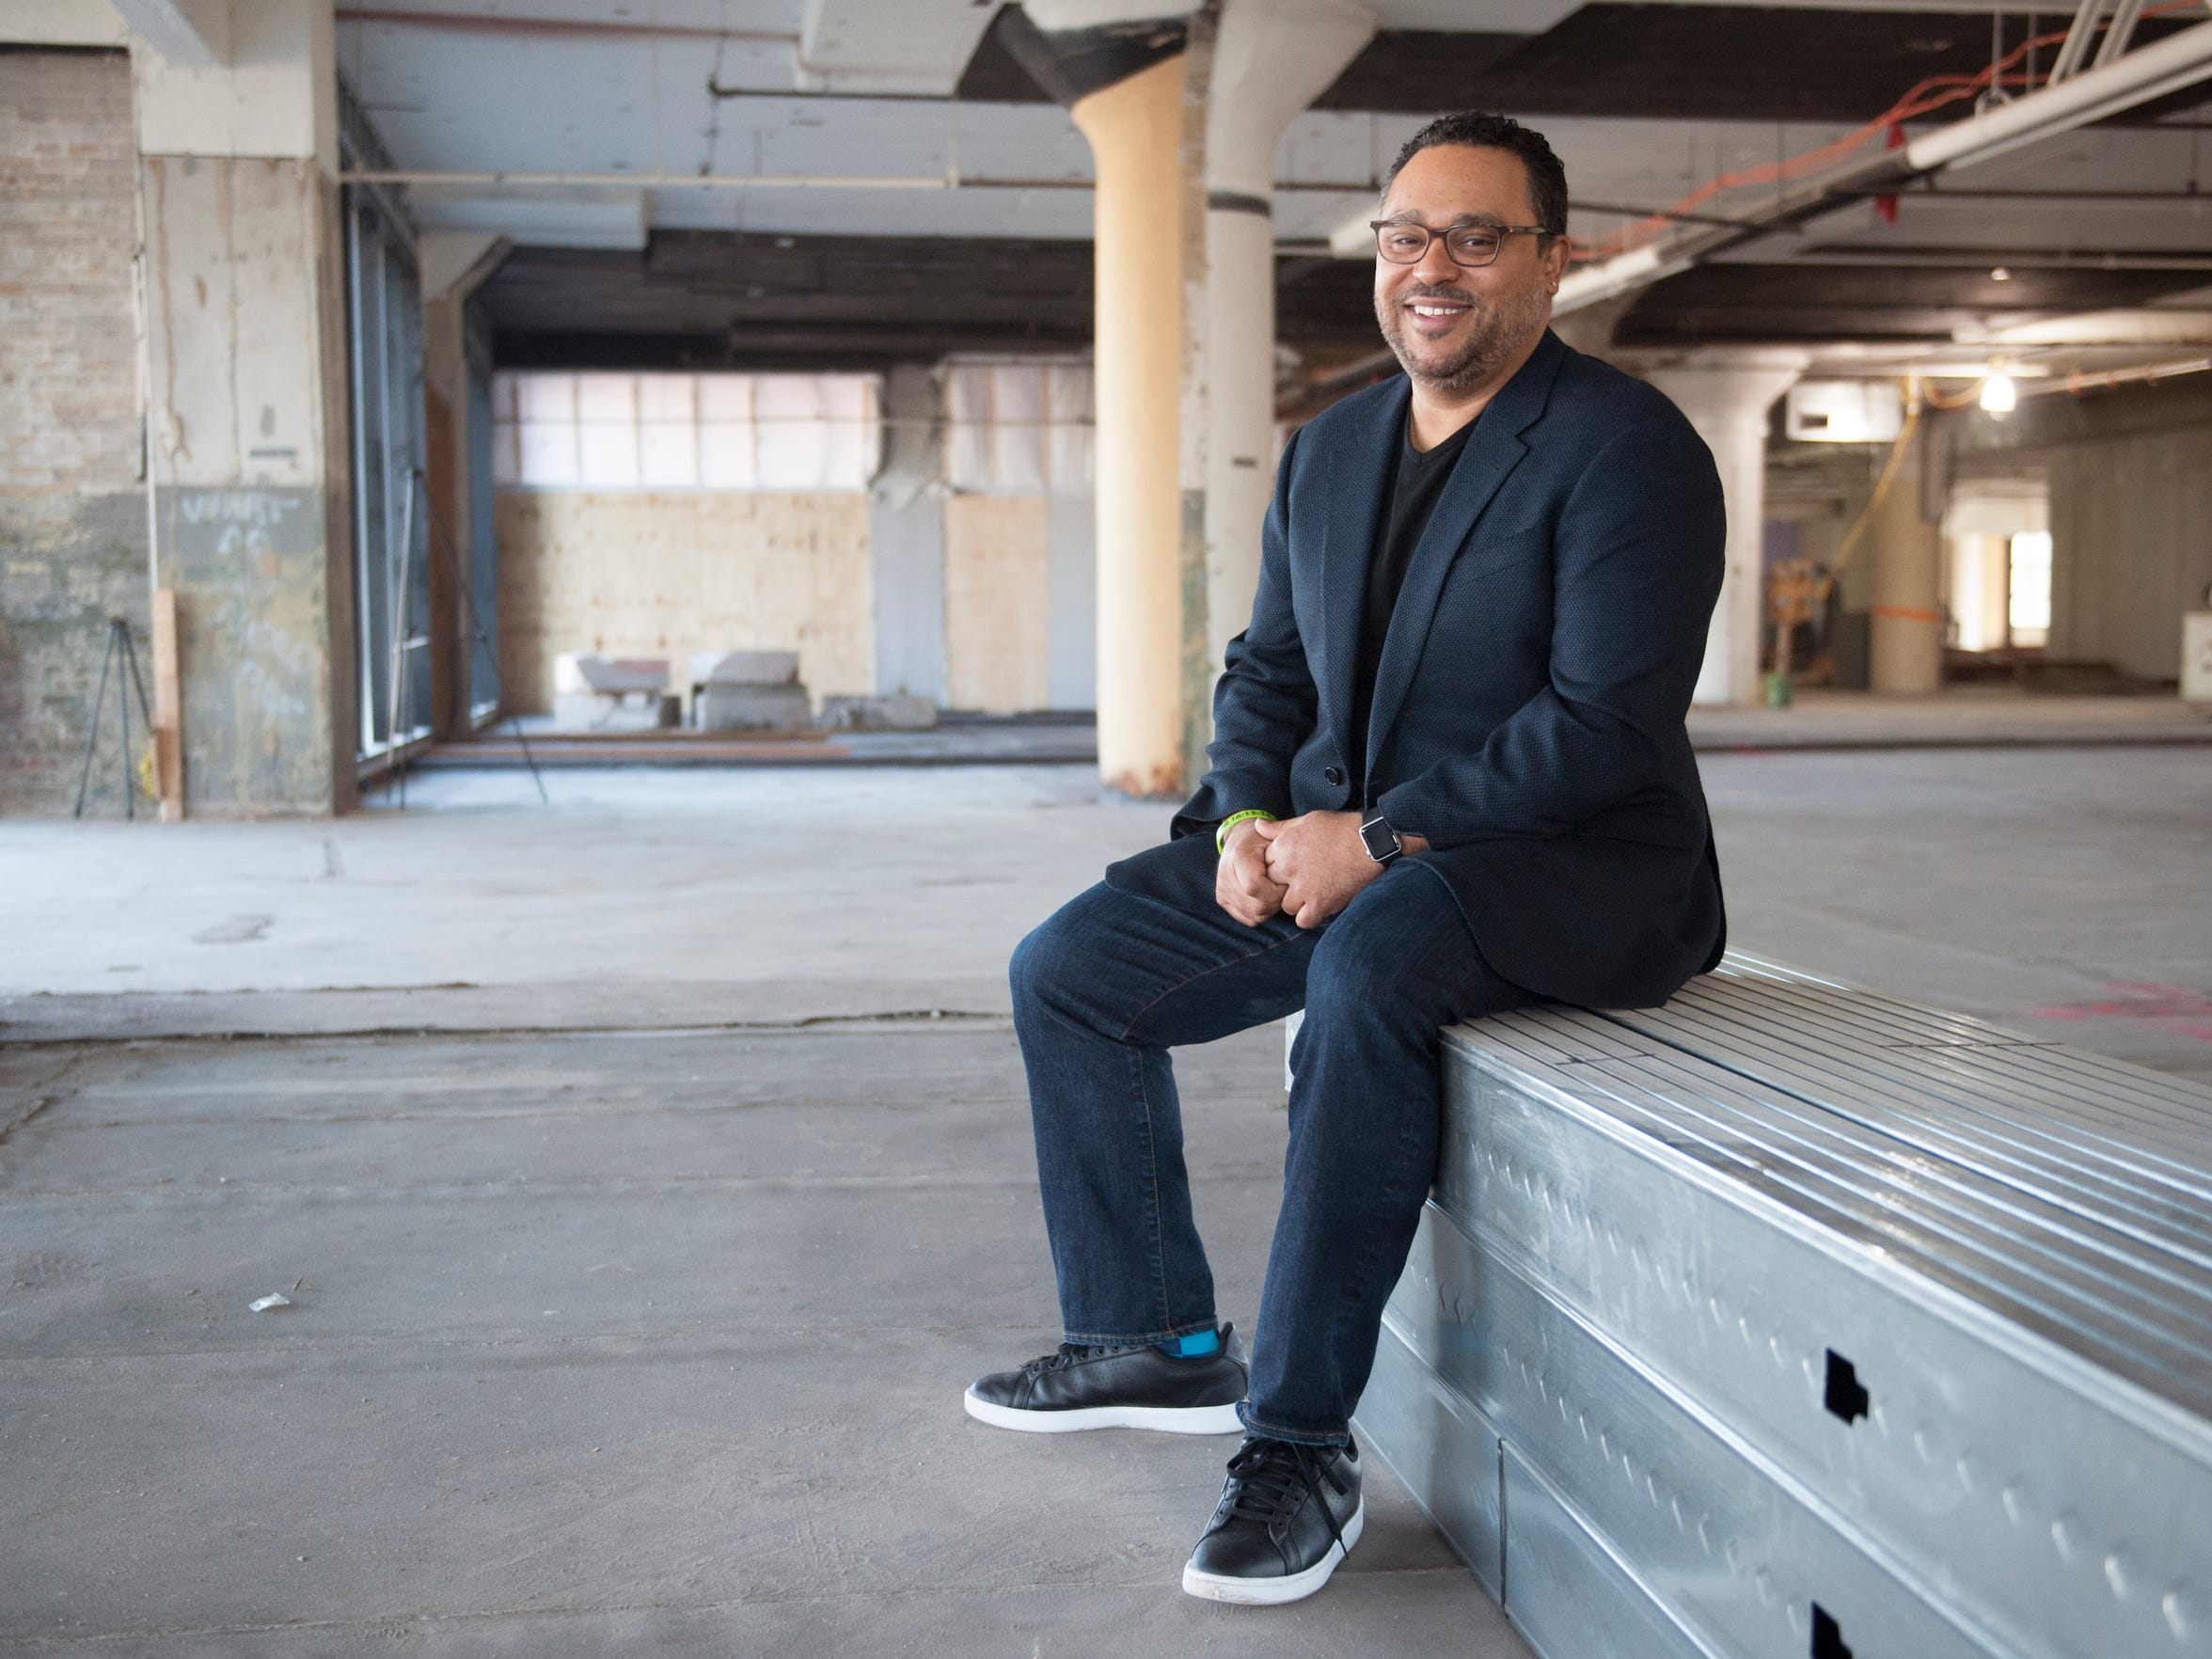 """'There is nothing so cohesive in one building anywhere,' says Kevin Sbraga of Fitler Club, where he says he's given the chance to really focus on the concept and """"the latitude to work within that vision and create something, too.''"""